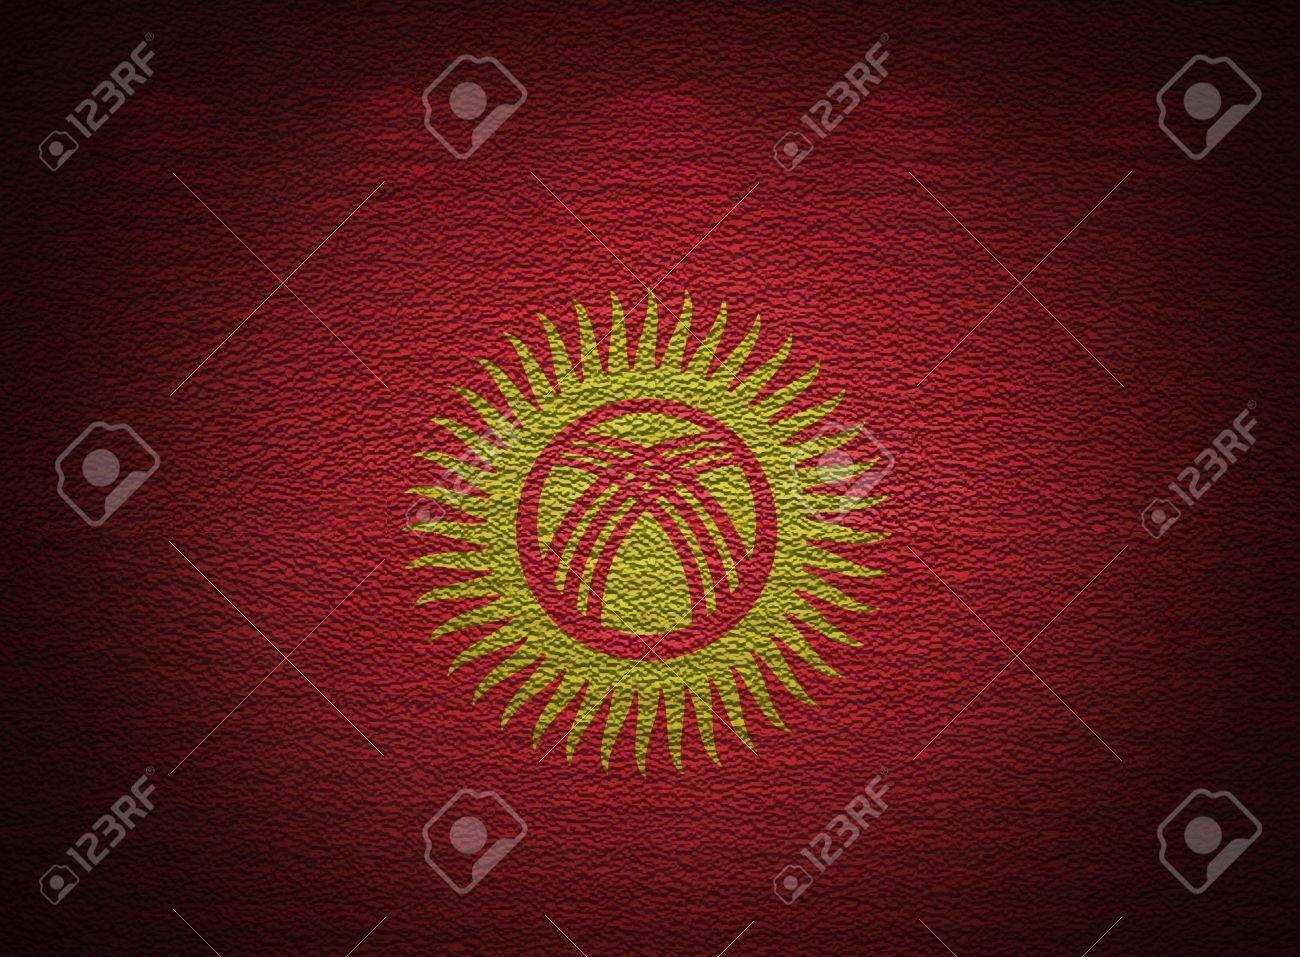 Kyrgyz flag wall, abstract grunge background Stock Photo - 14253179